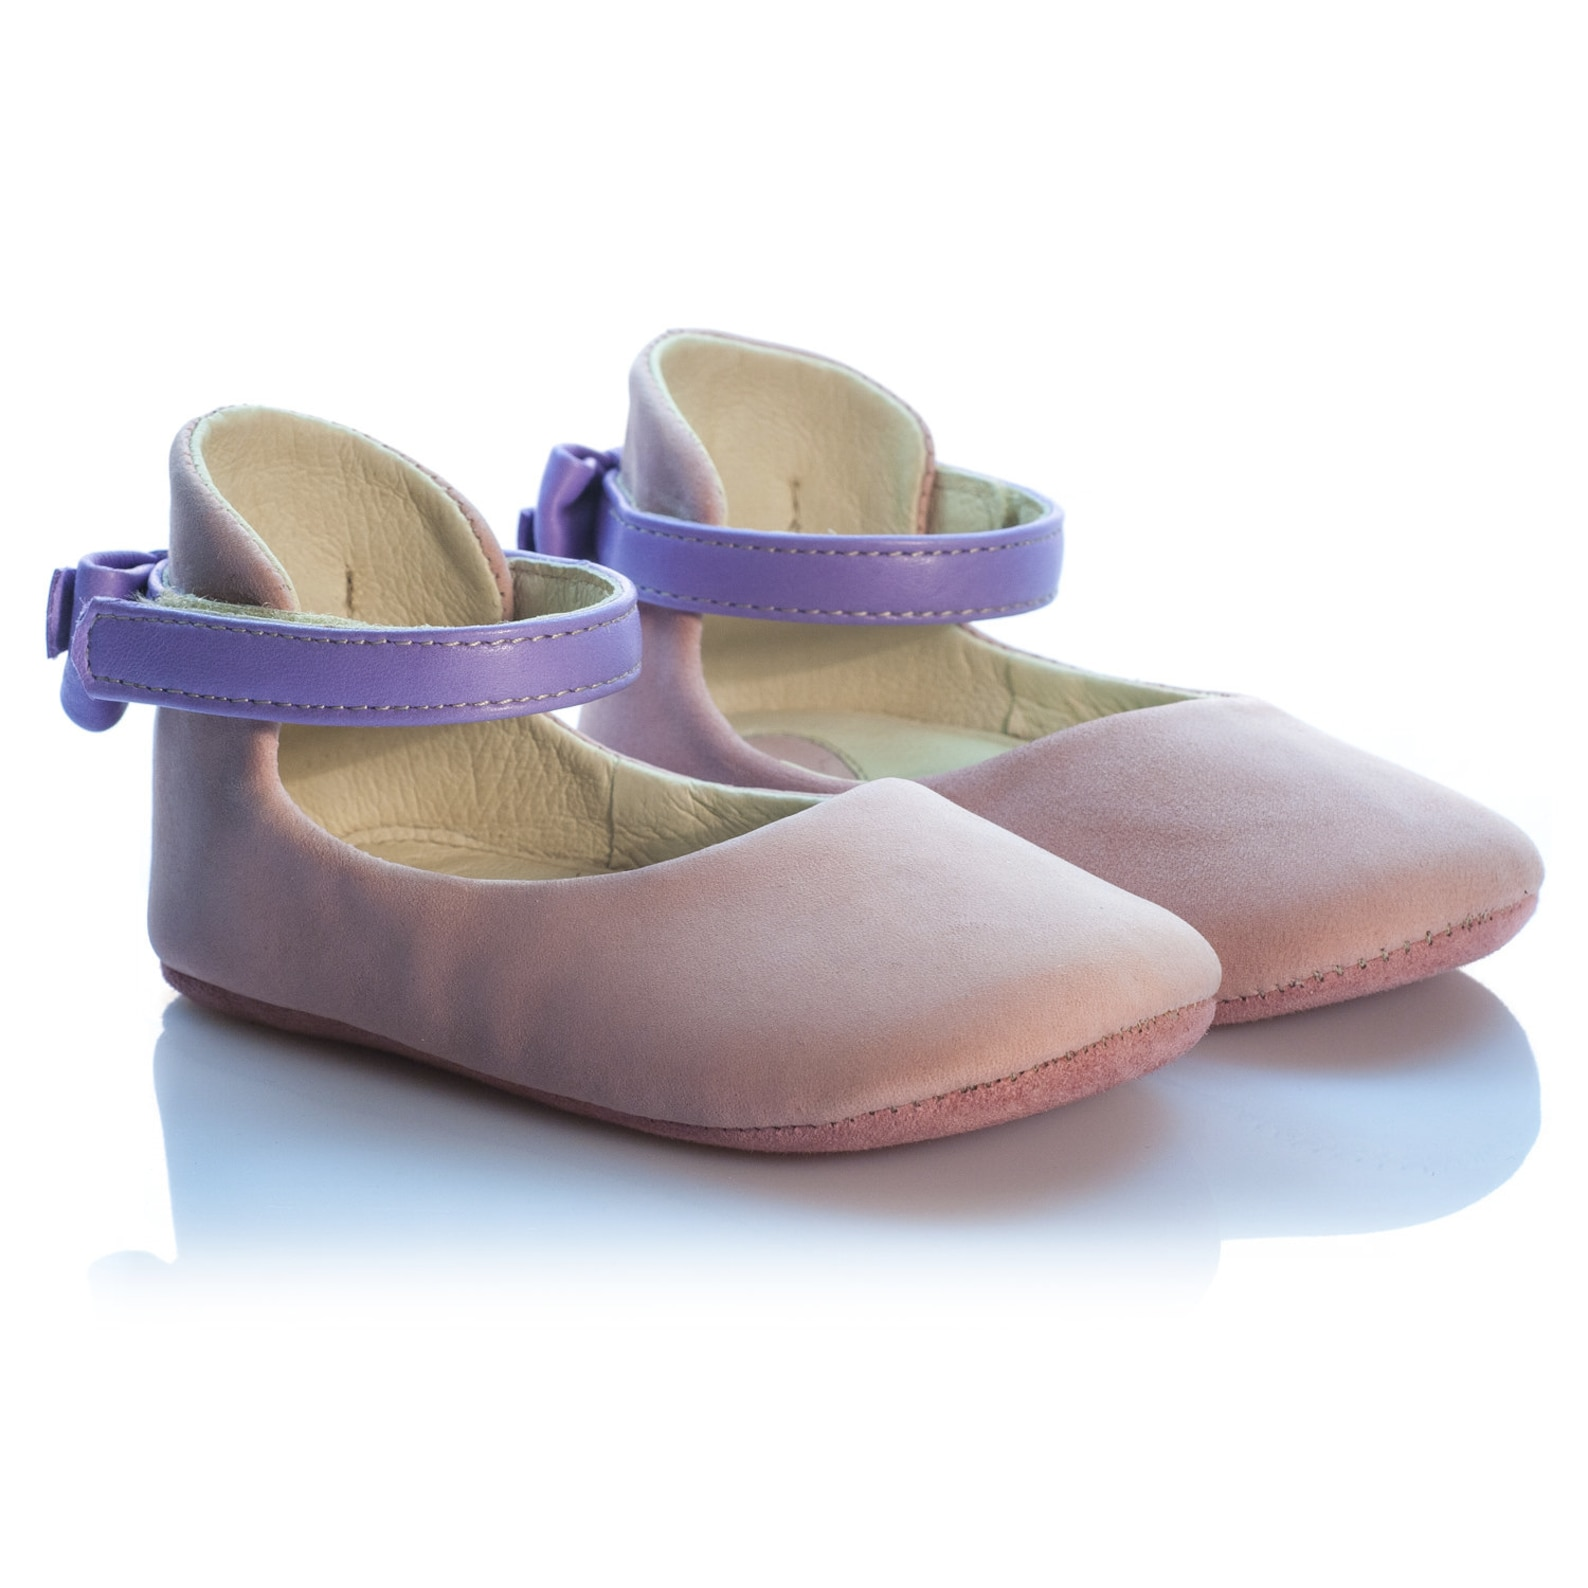 daphne - bow-embellished leather ballerinas pink leather baby girl shoes leather ballet flats for toddlers mary janes by vibys